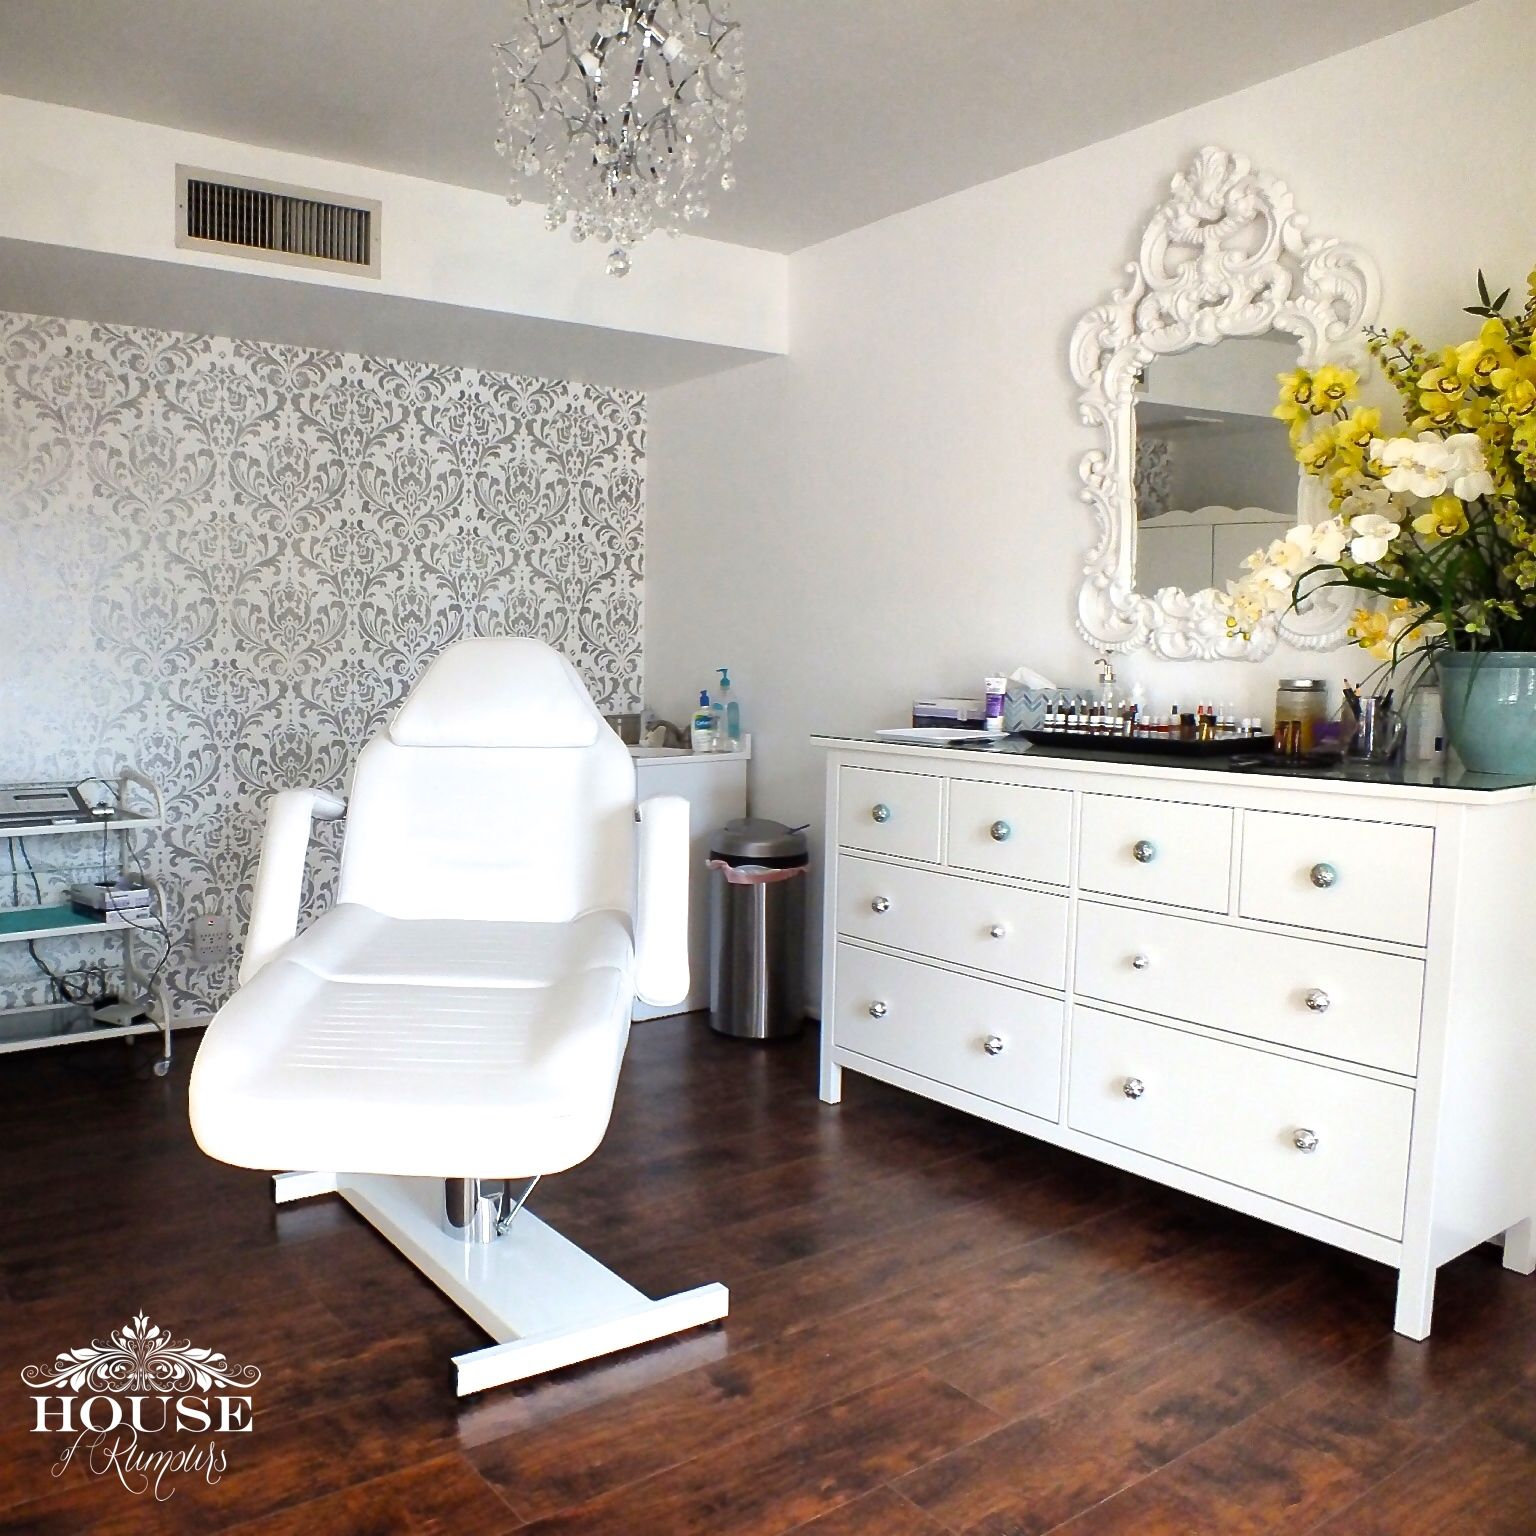 Anna damask stencil contemporary cosmetic salon cutting edge cutting edge stencils shares a diy stenciled accent wall in a salon using the anna damask stencil in metallic silver and white amipublicfo Gallery